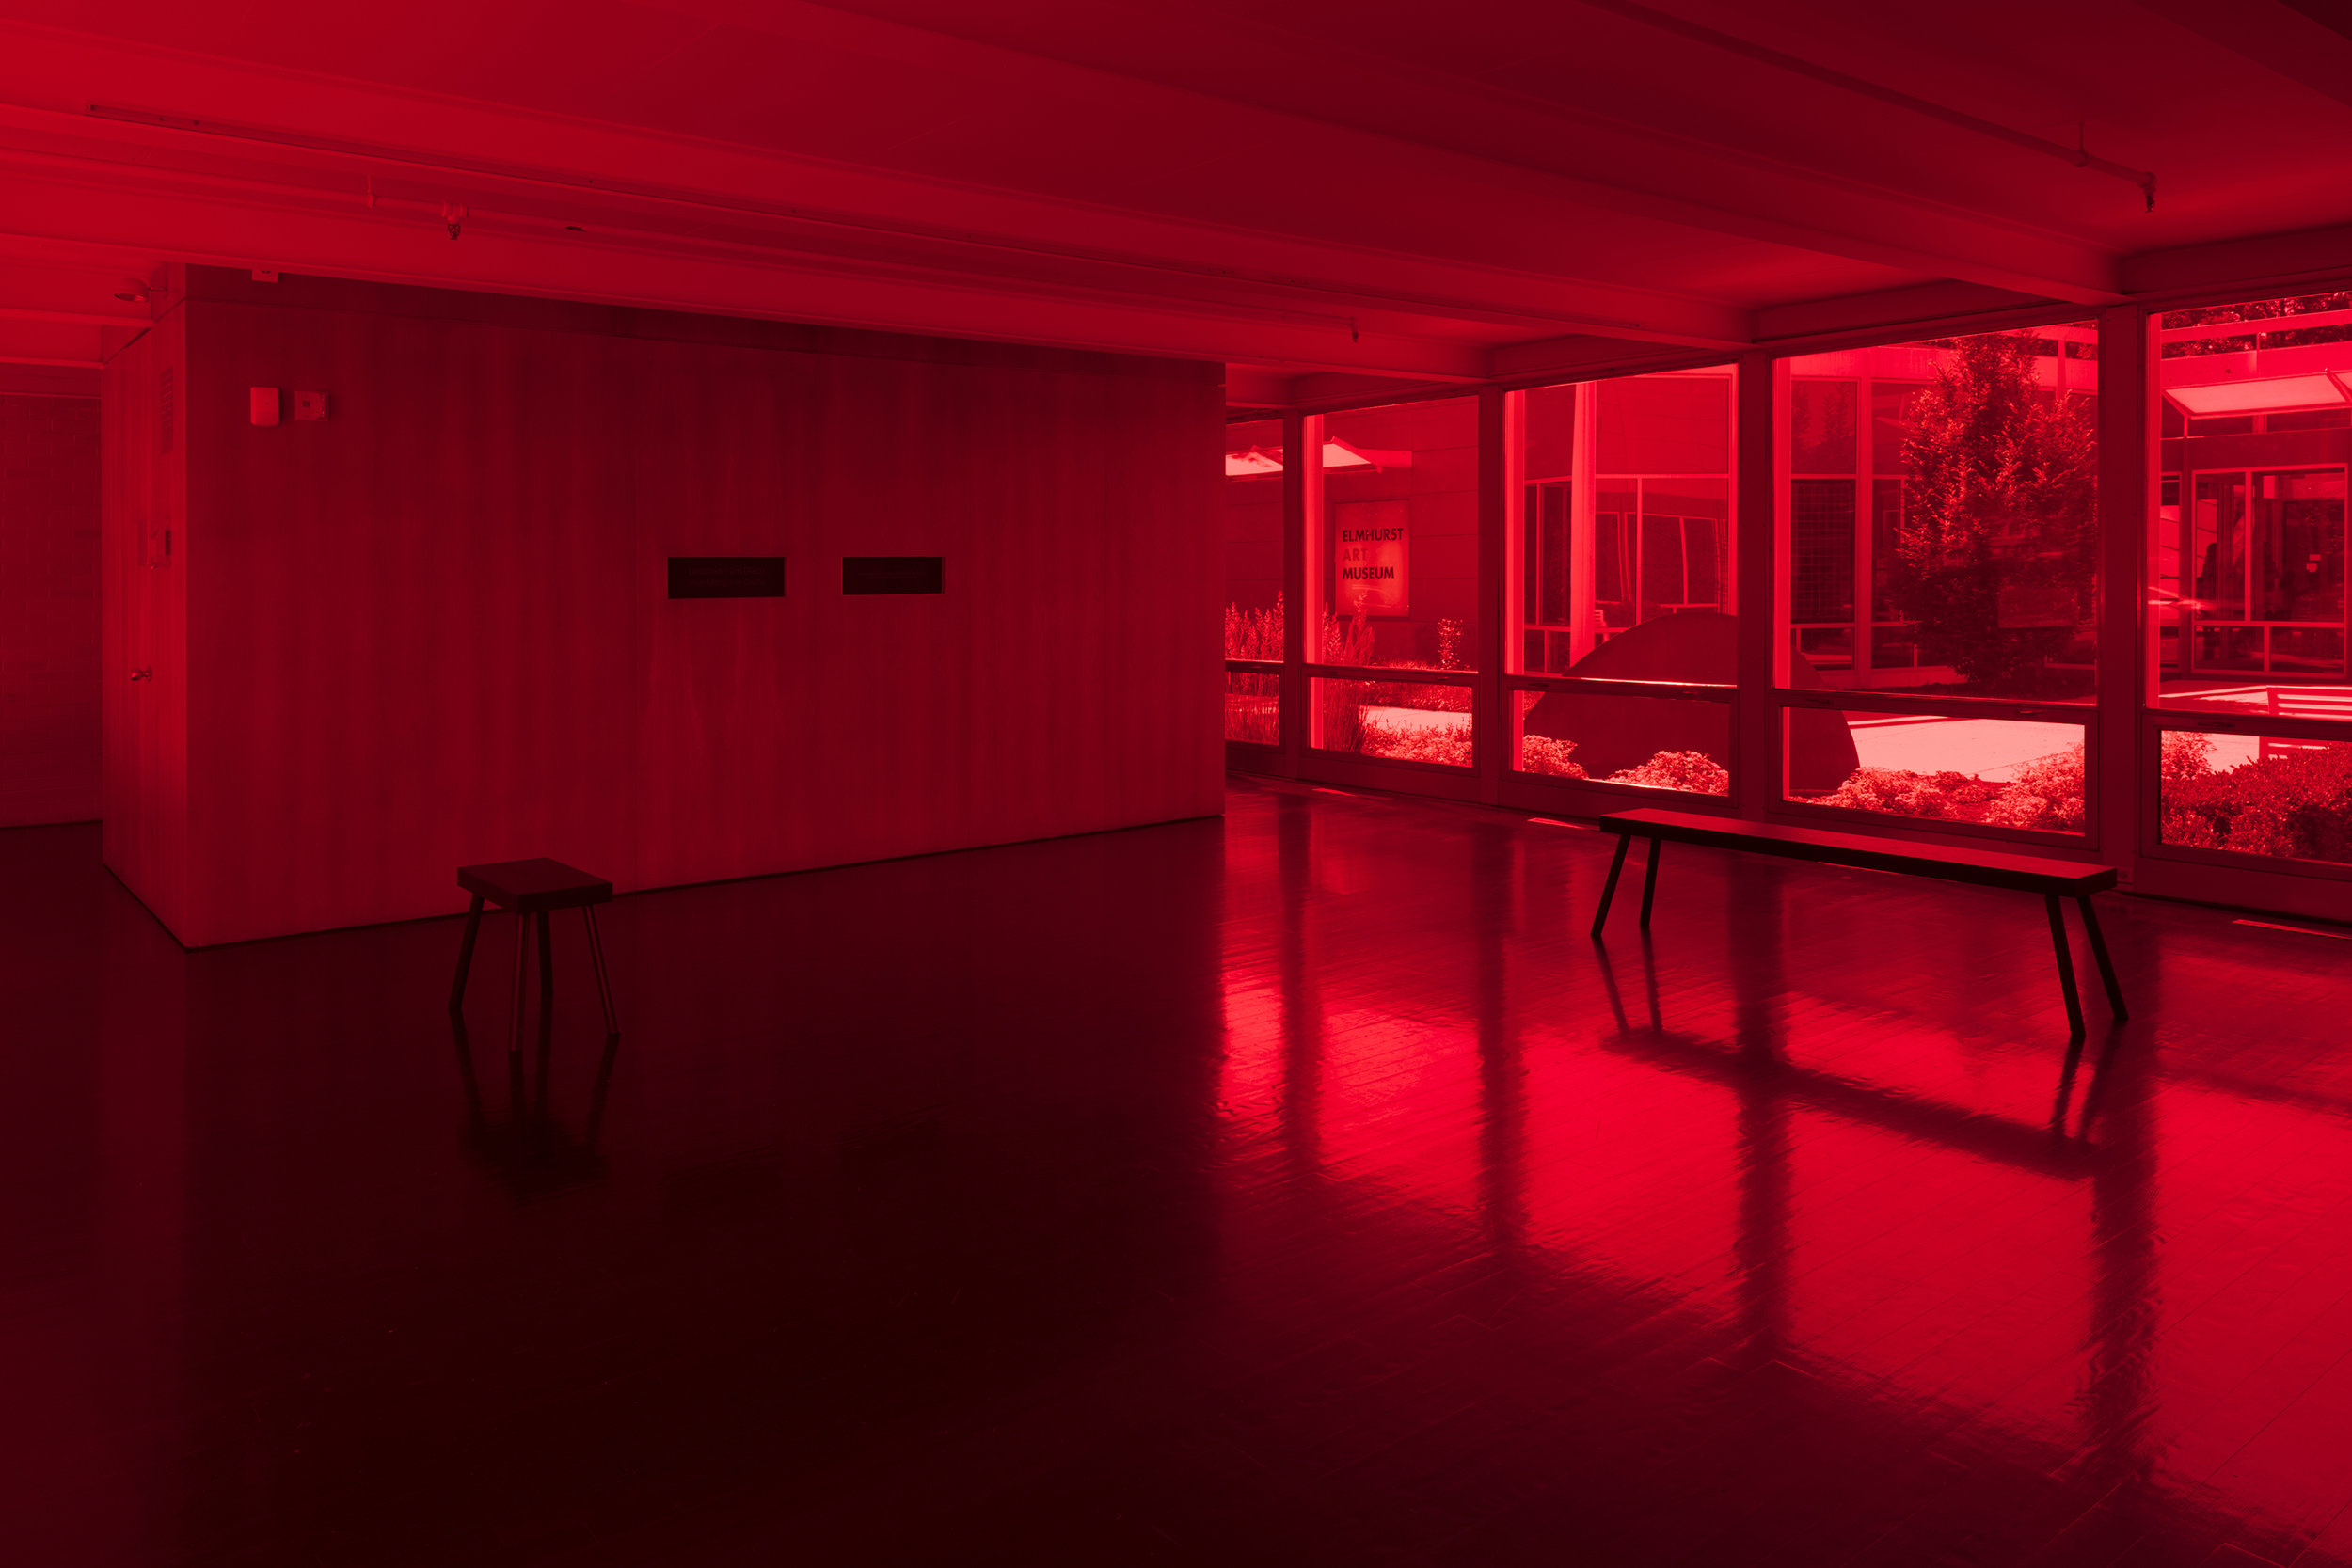 Iñigo Manglano-Ovalle,  Untitled Film (Red) , installation view, Elmhurst Art Museum, Elmhurst, IL, 2018. Photography by James Prinz